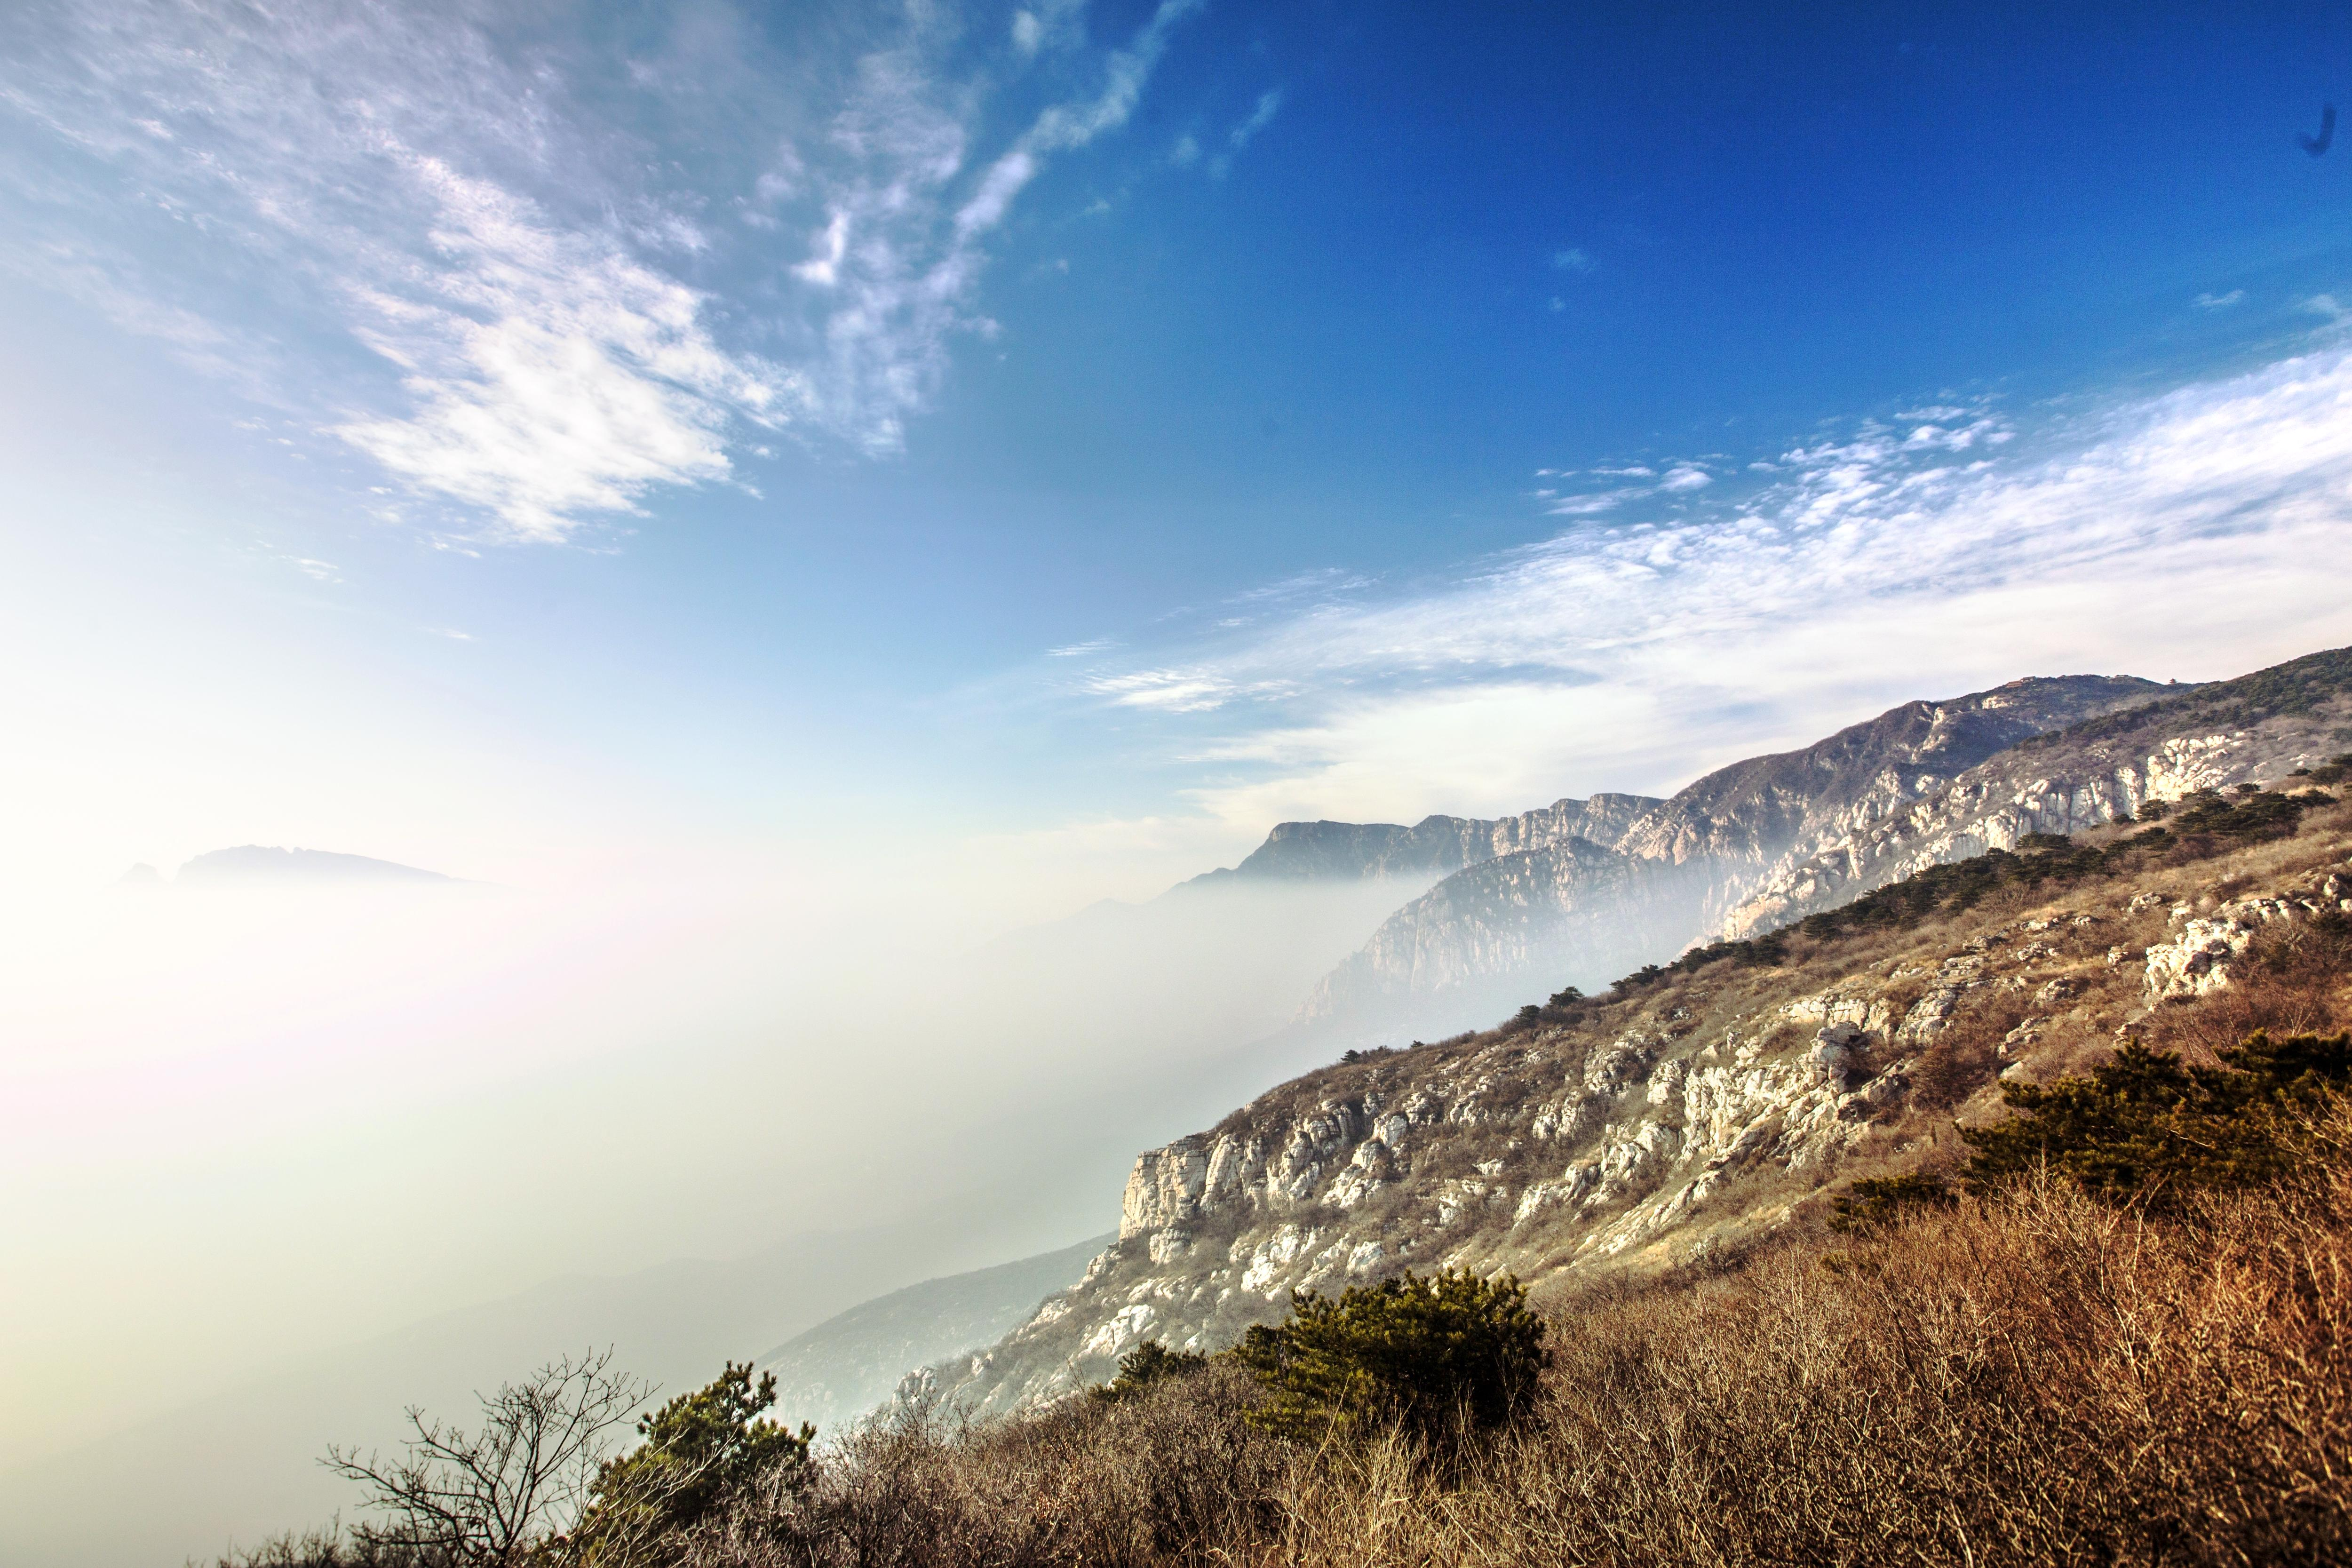 Songshan Scenic Area